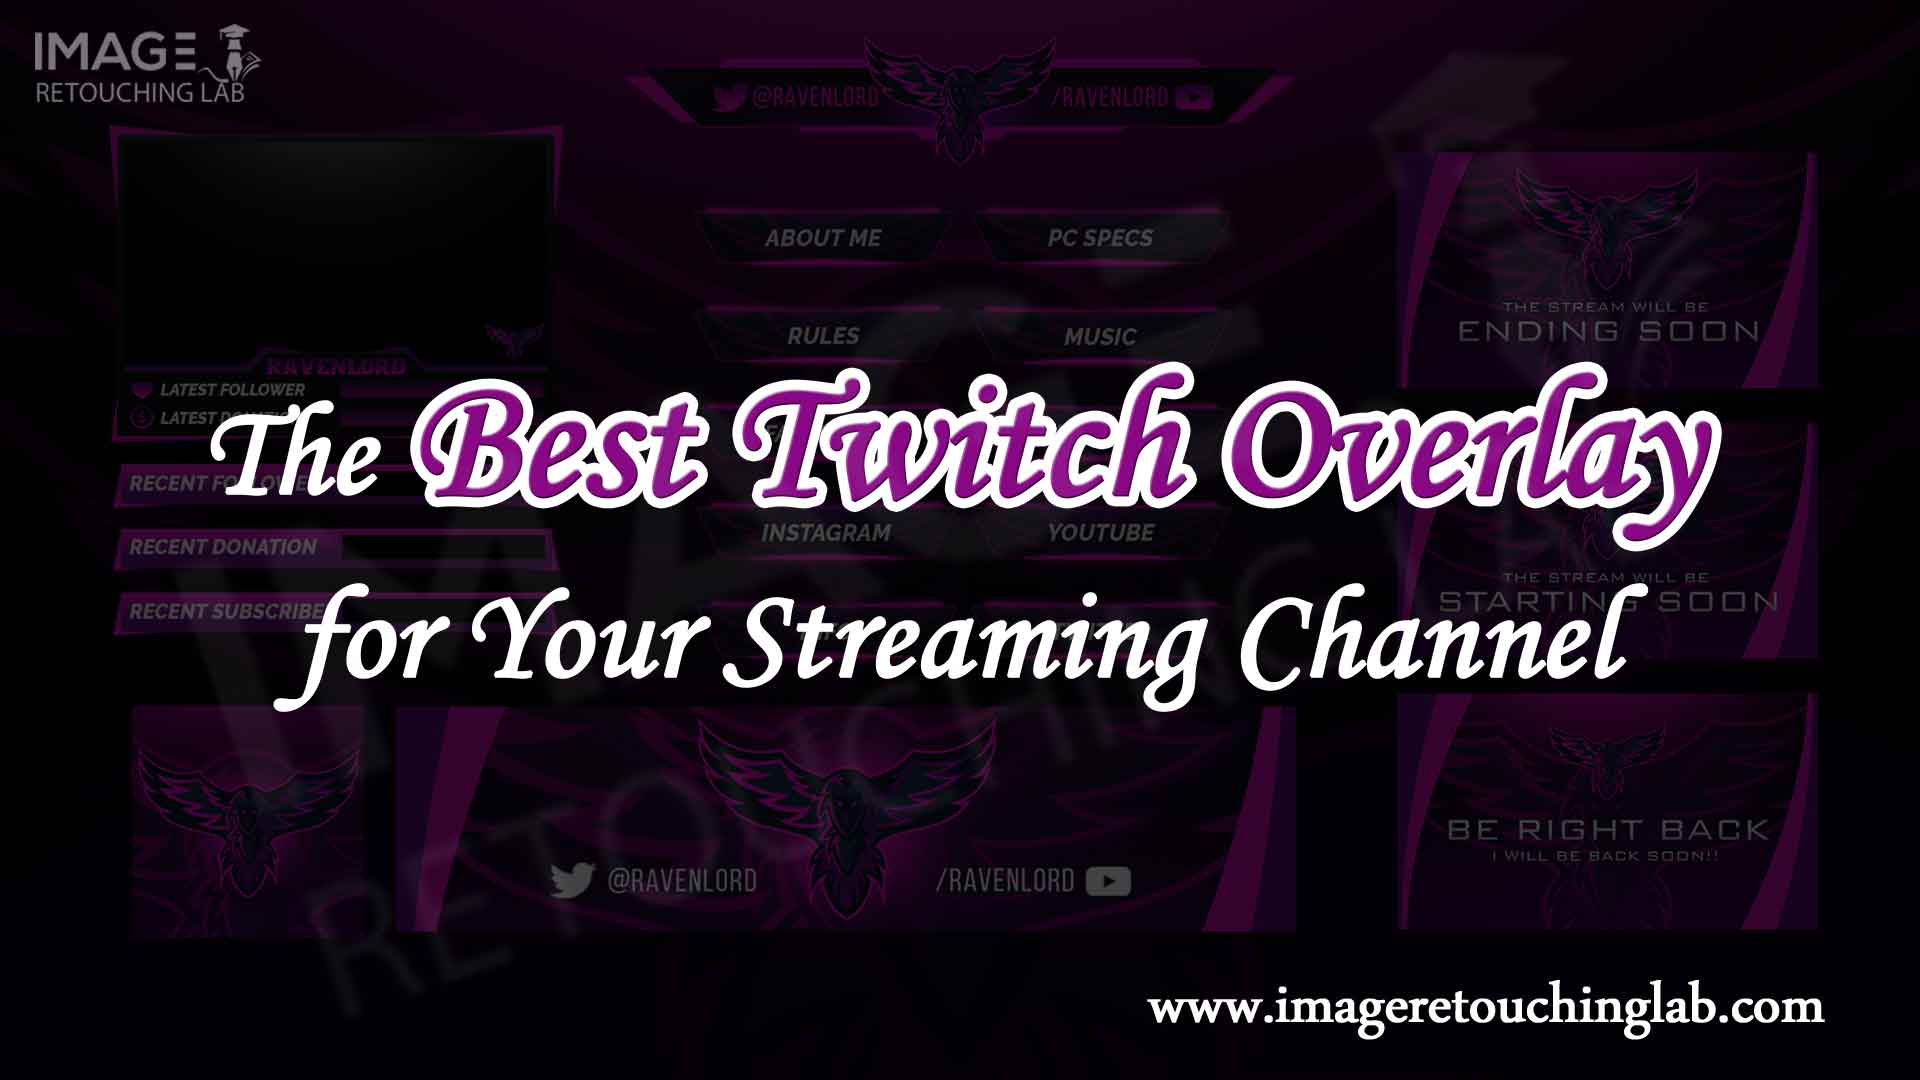 The Best Twitch Overlay for Your Streaming Channel